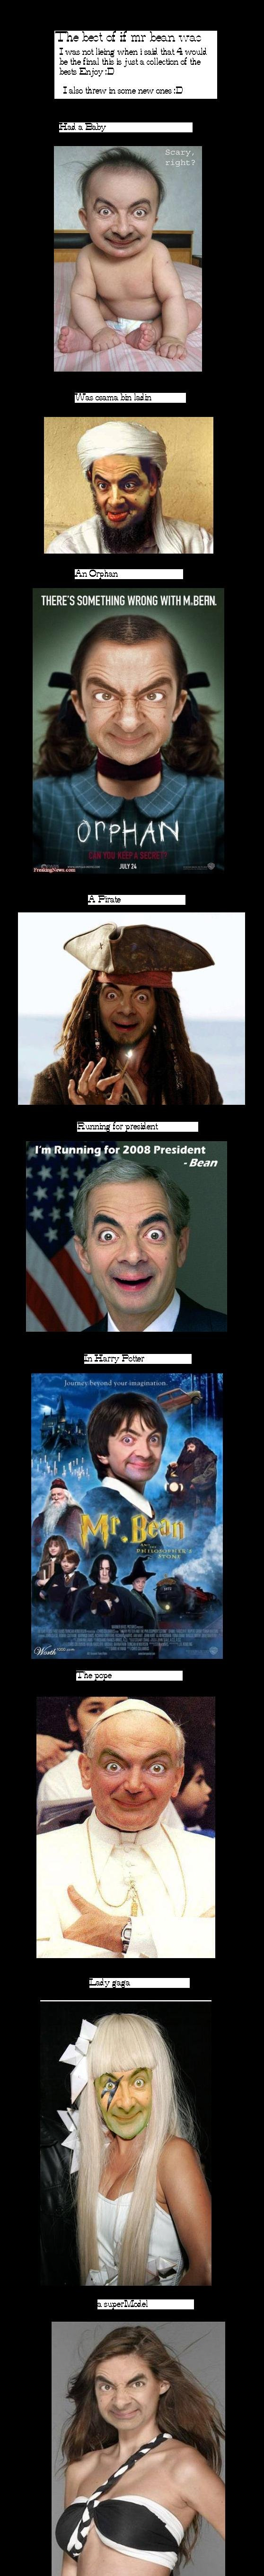 The Best of If Mr Bean Was.. The Last. The best i rrm ban - I also threw in some new ones D Na: mama bin lain THERE' S SOMETHING WRITNG WITH M., BEHN. I' m Runn